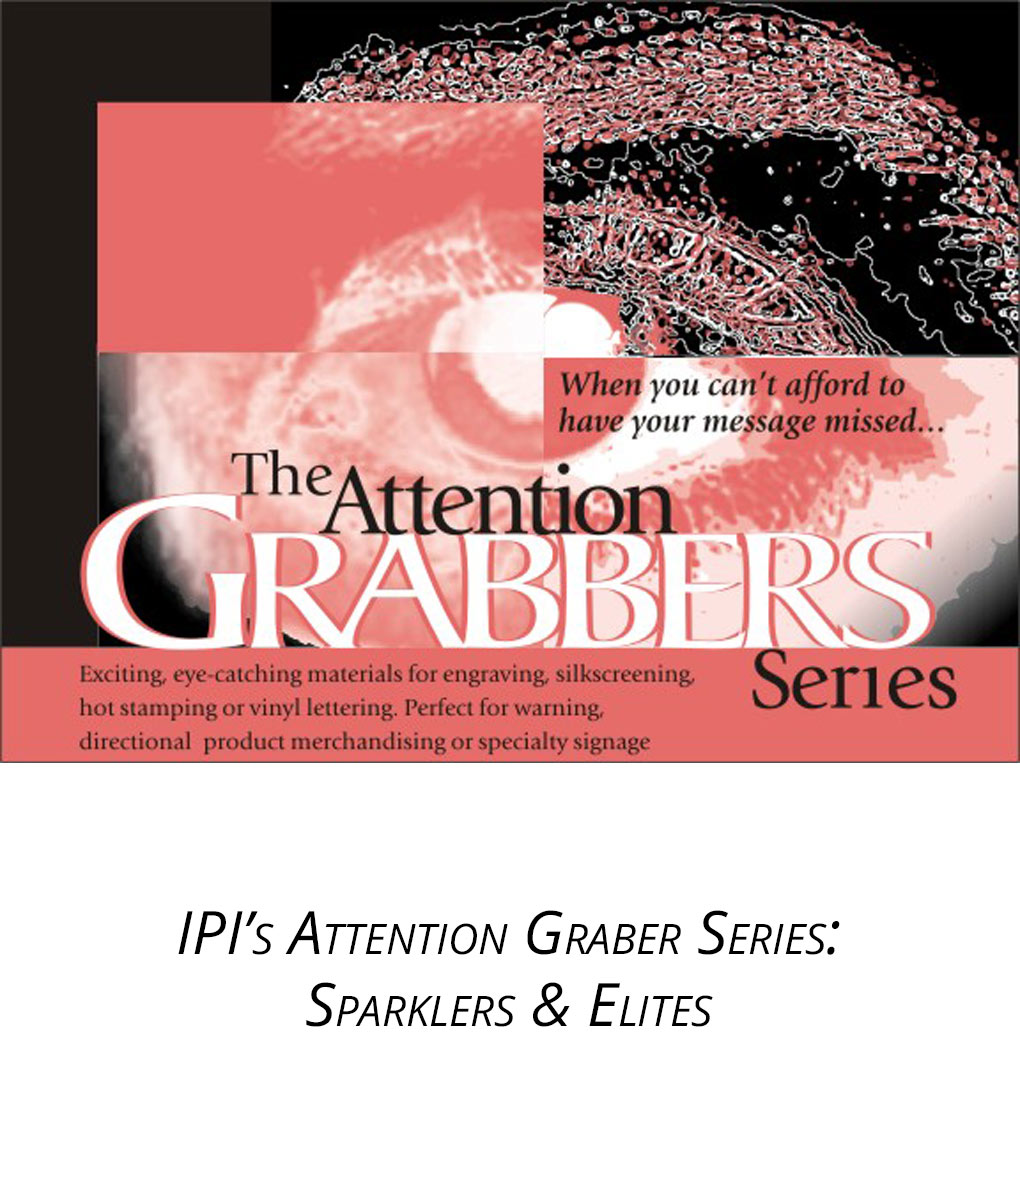 IPI Attention Grabber Series - Sparklers Elites material from Main Trophy Supply